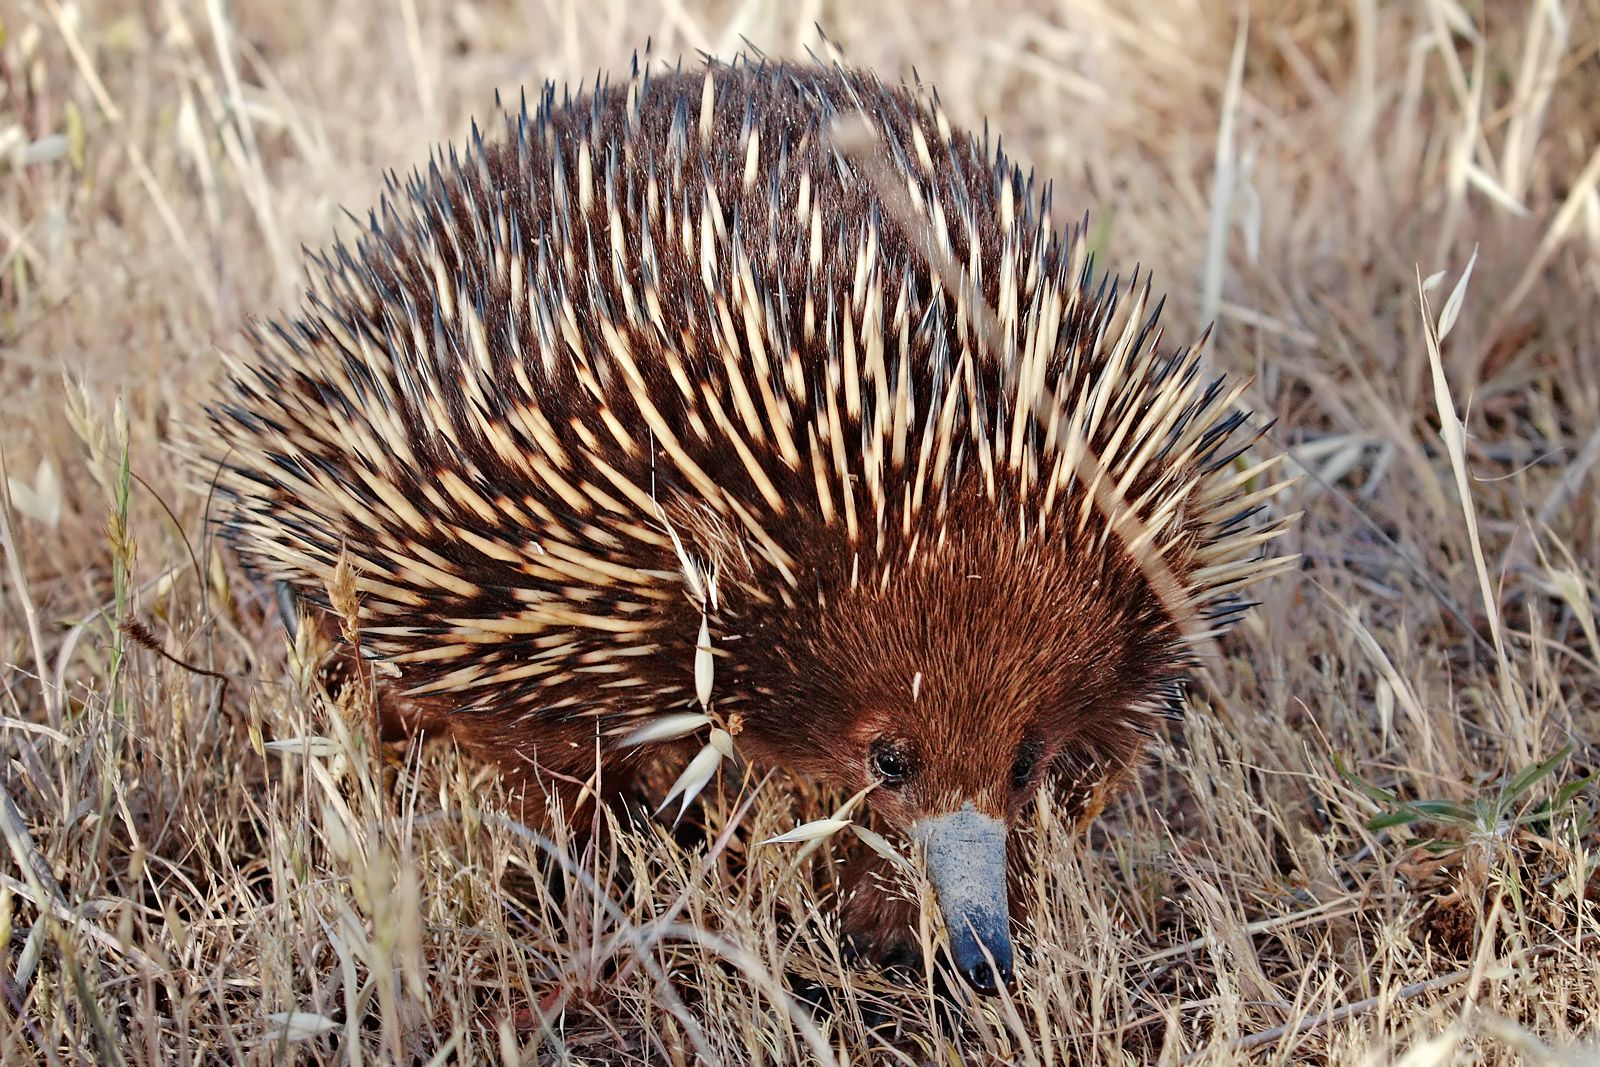 Echidna One Of Two Egg Laying Mammals The Other Is The